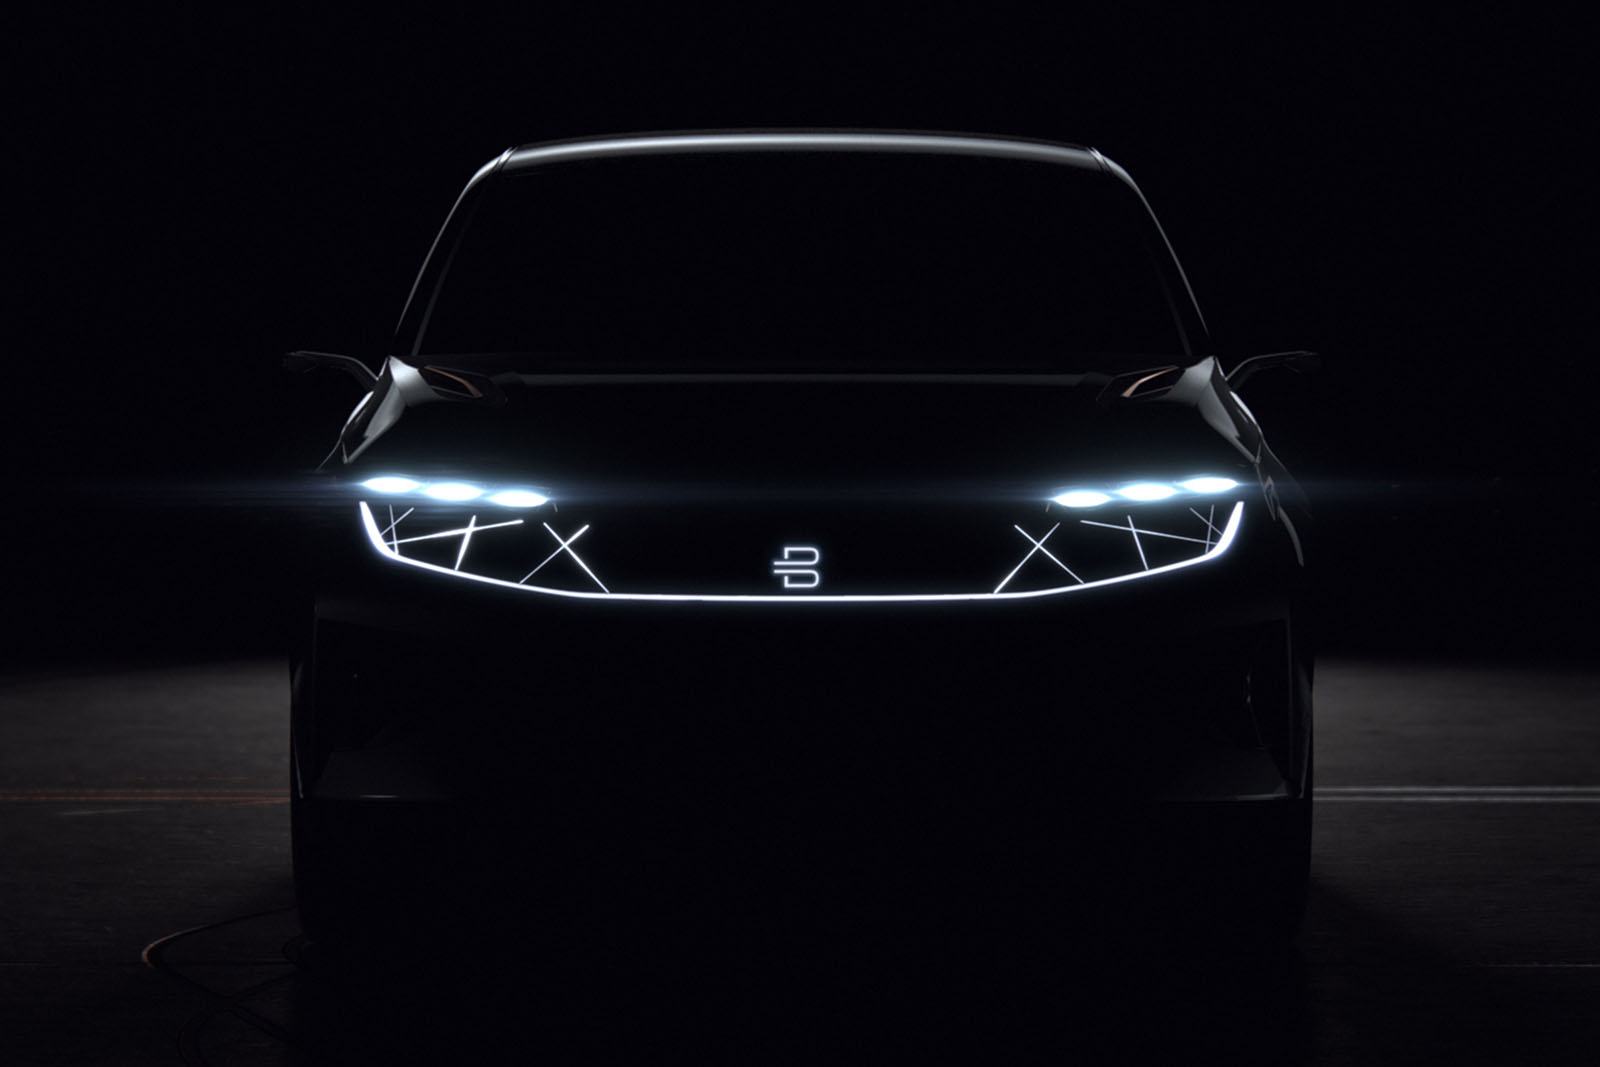 Details Remain Scarce As Chinese Ev Startup Byton Teases